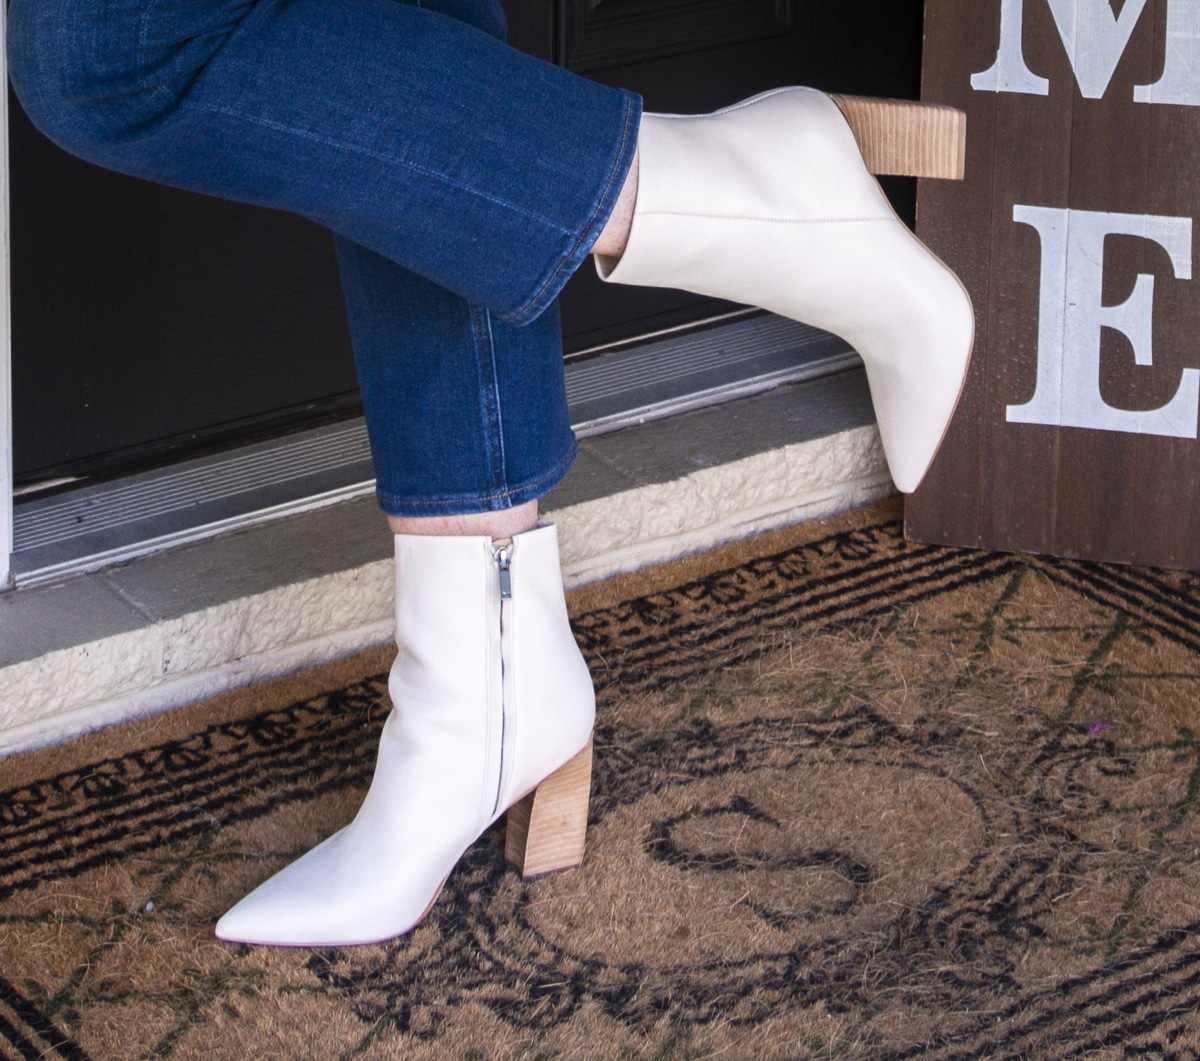 Fashion Blogger 50 Is Not Old is wearing white pointy toe ankle boots